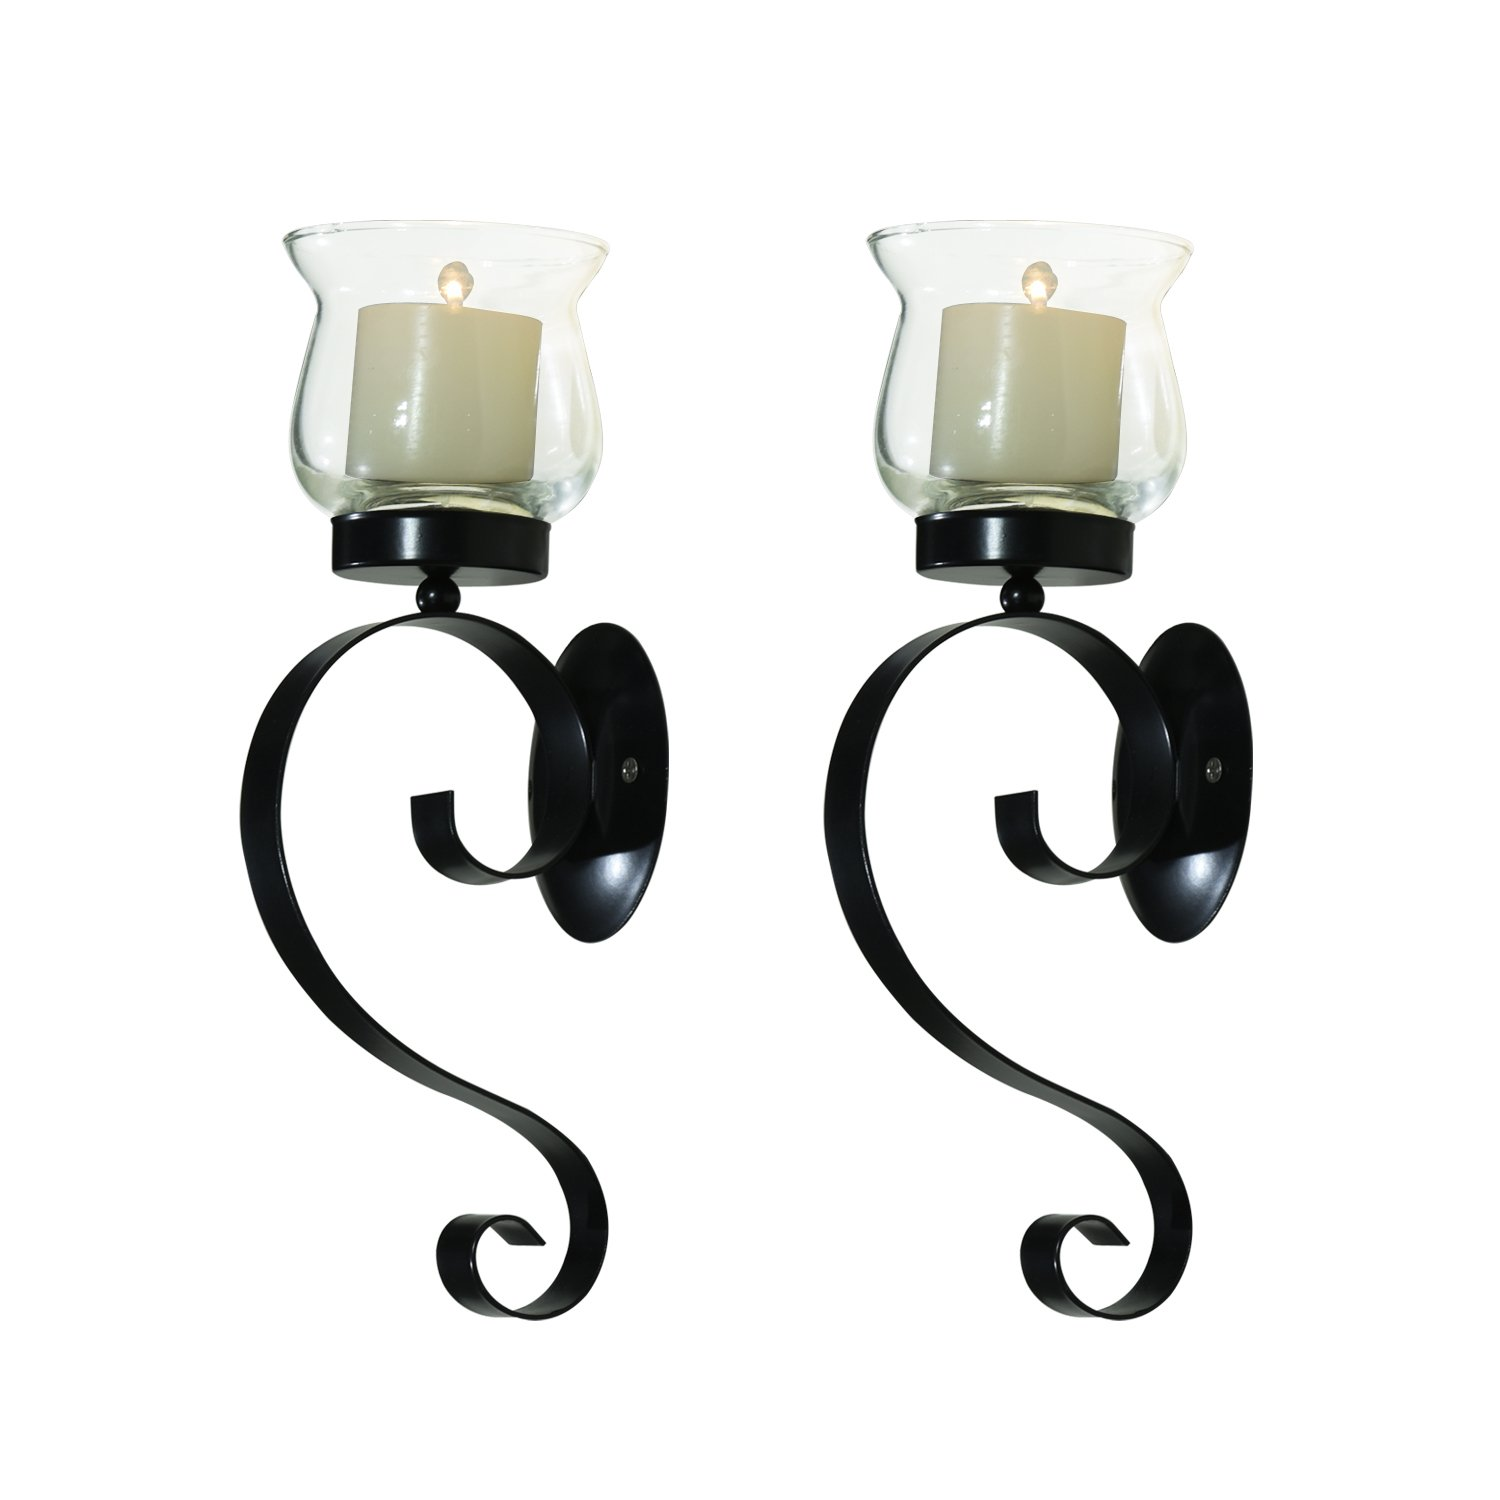 Homebeez Decorative Iron Vertical Candle Holder Sconce Wall Lighting, Black Color With Antique Finish (Set of Two)